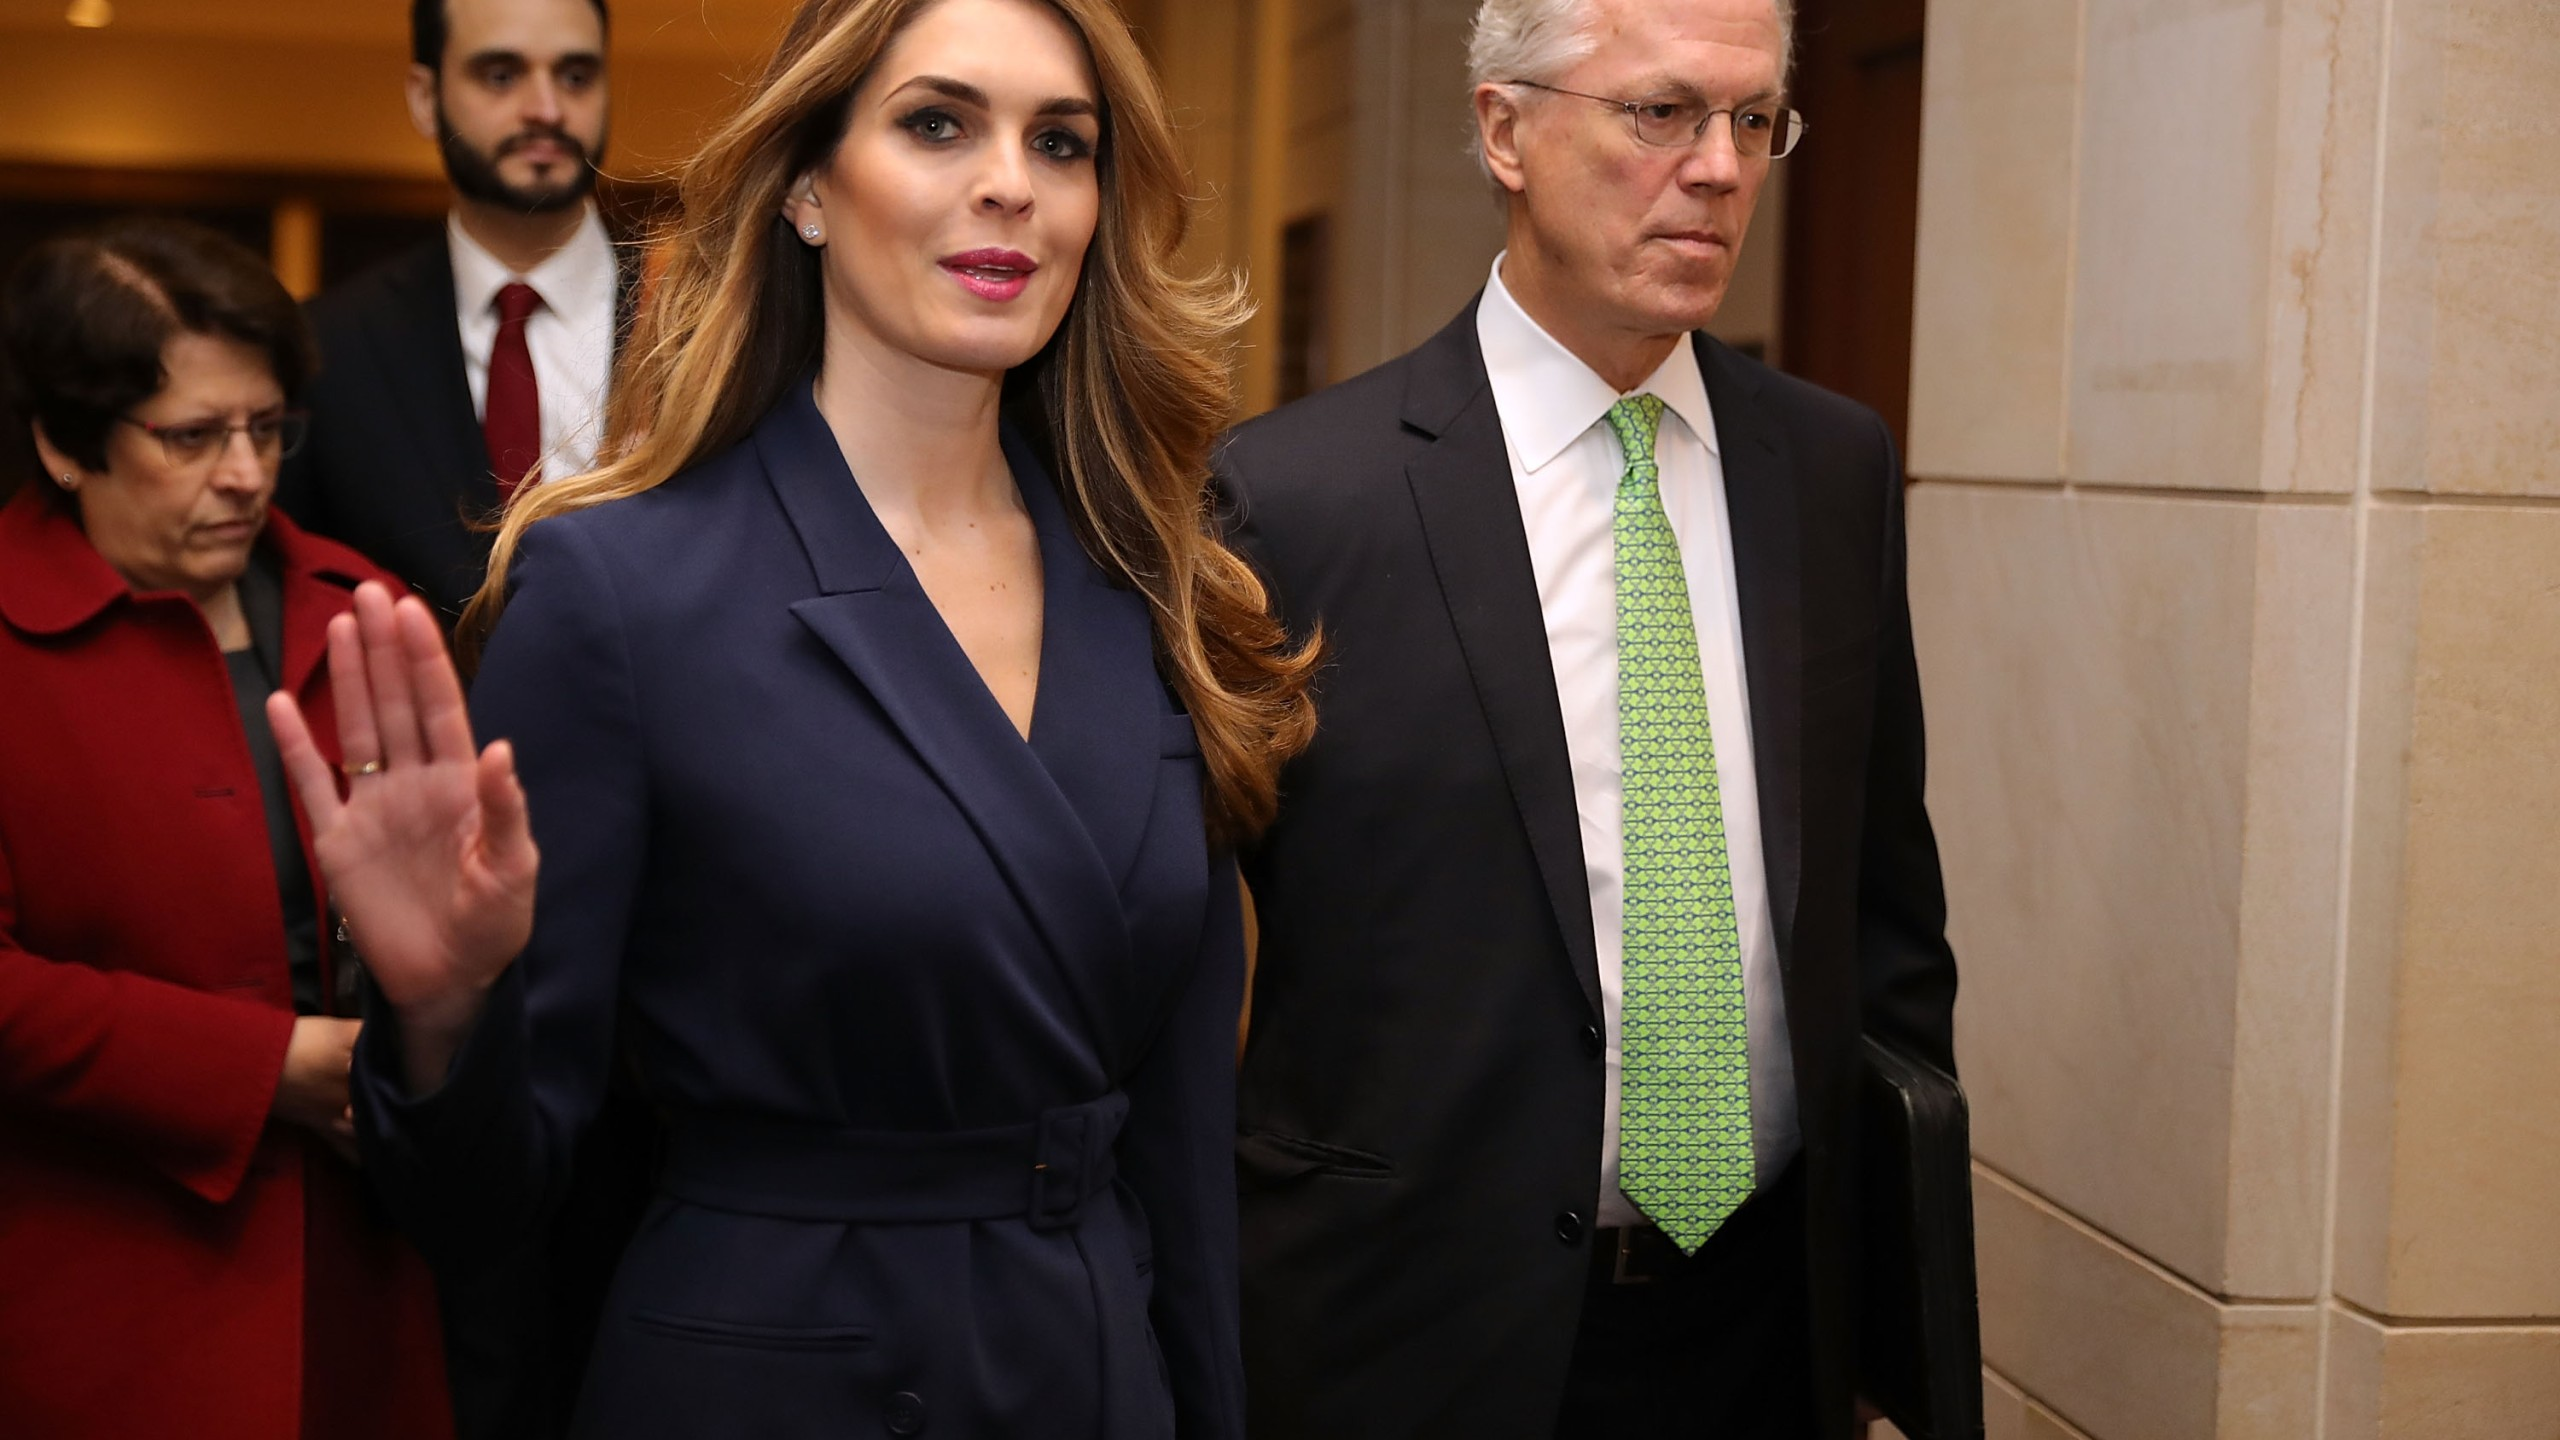 White House Communications Director Hope Hicks Is Interviewed By House Intelligence Committee During Russian Investigation_646097